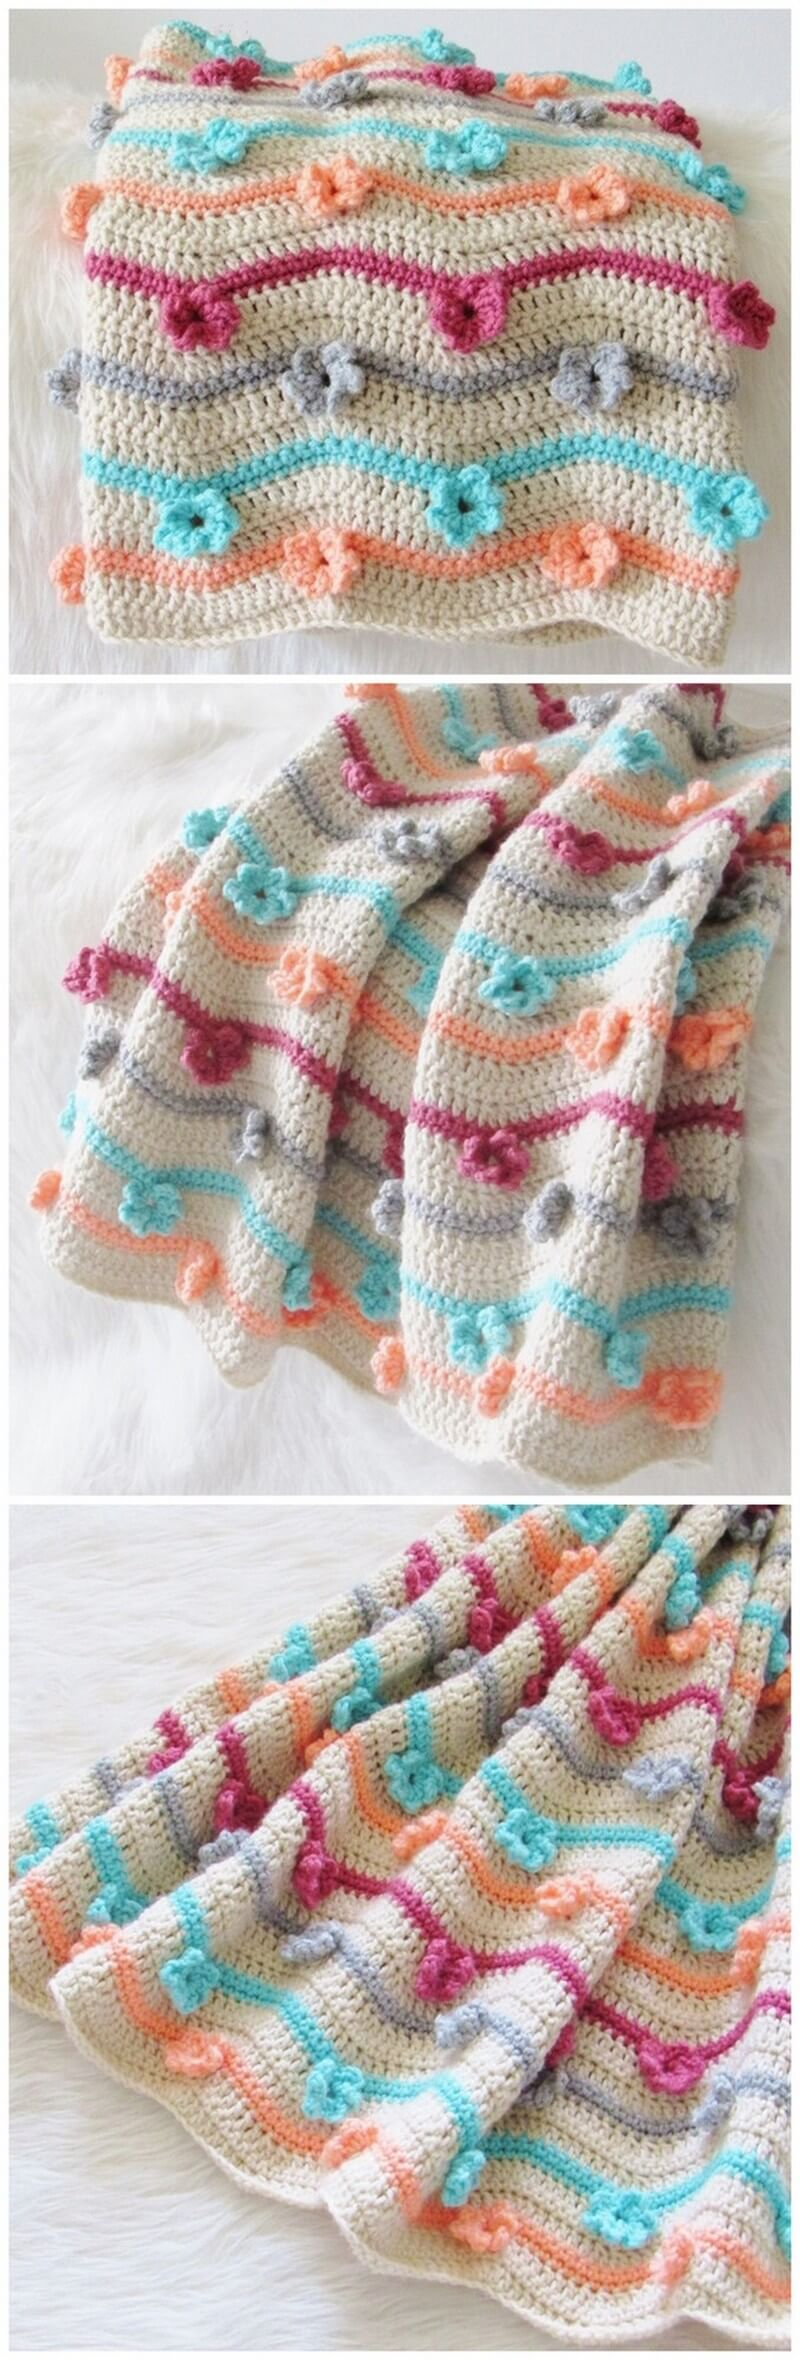 Easy Crochet Blanket Pattern (23)